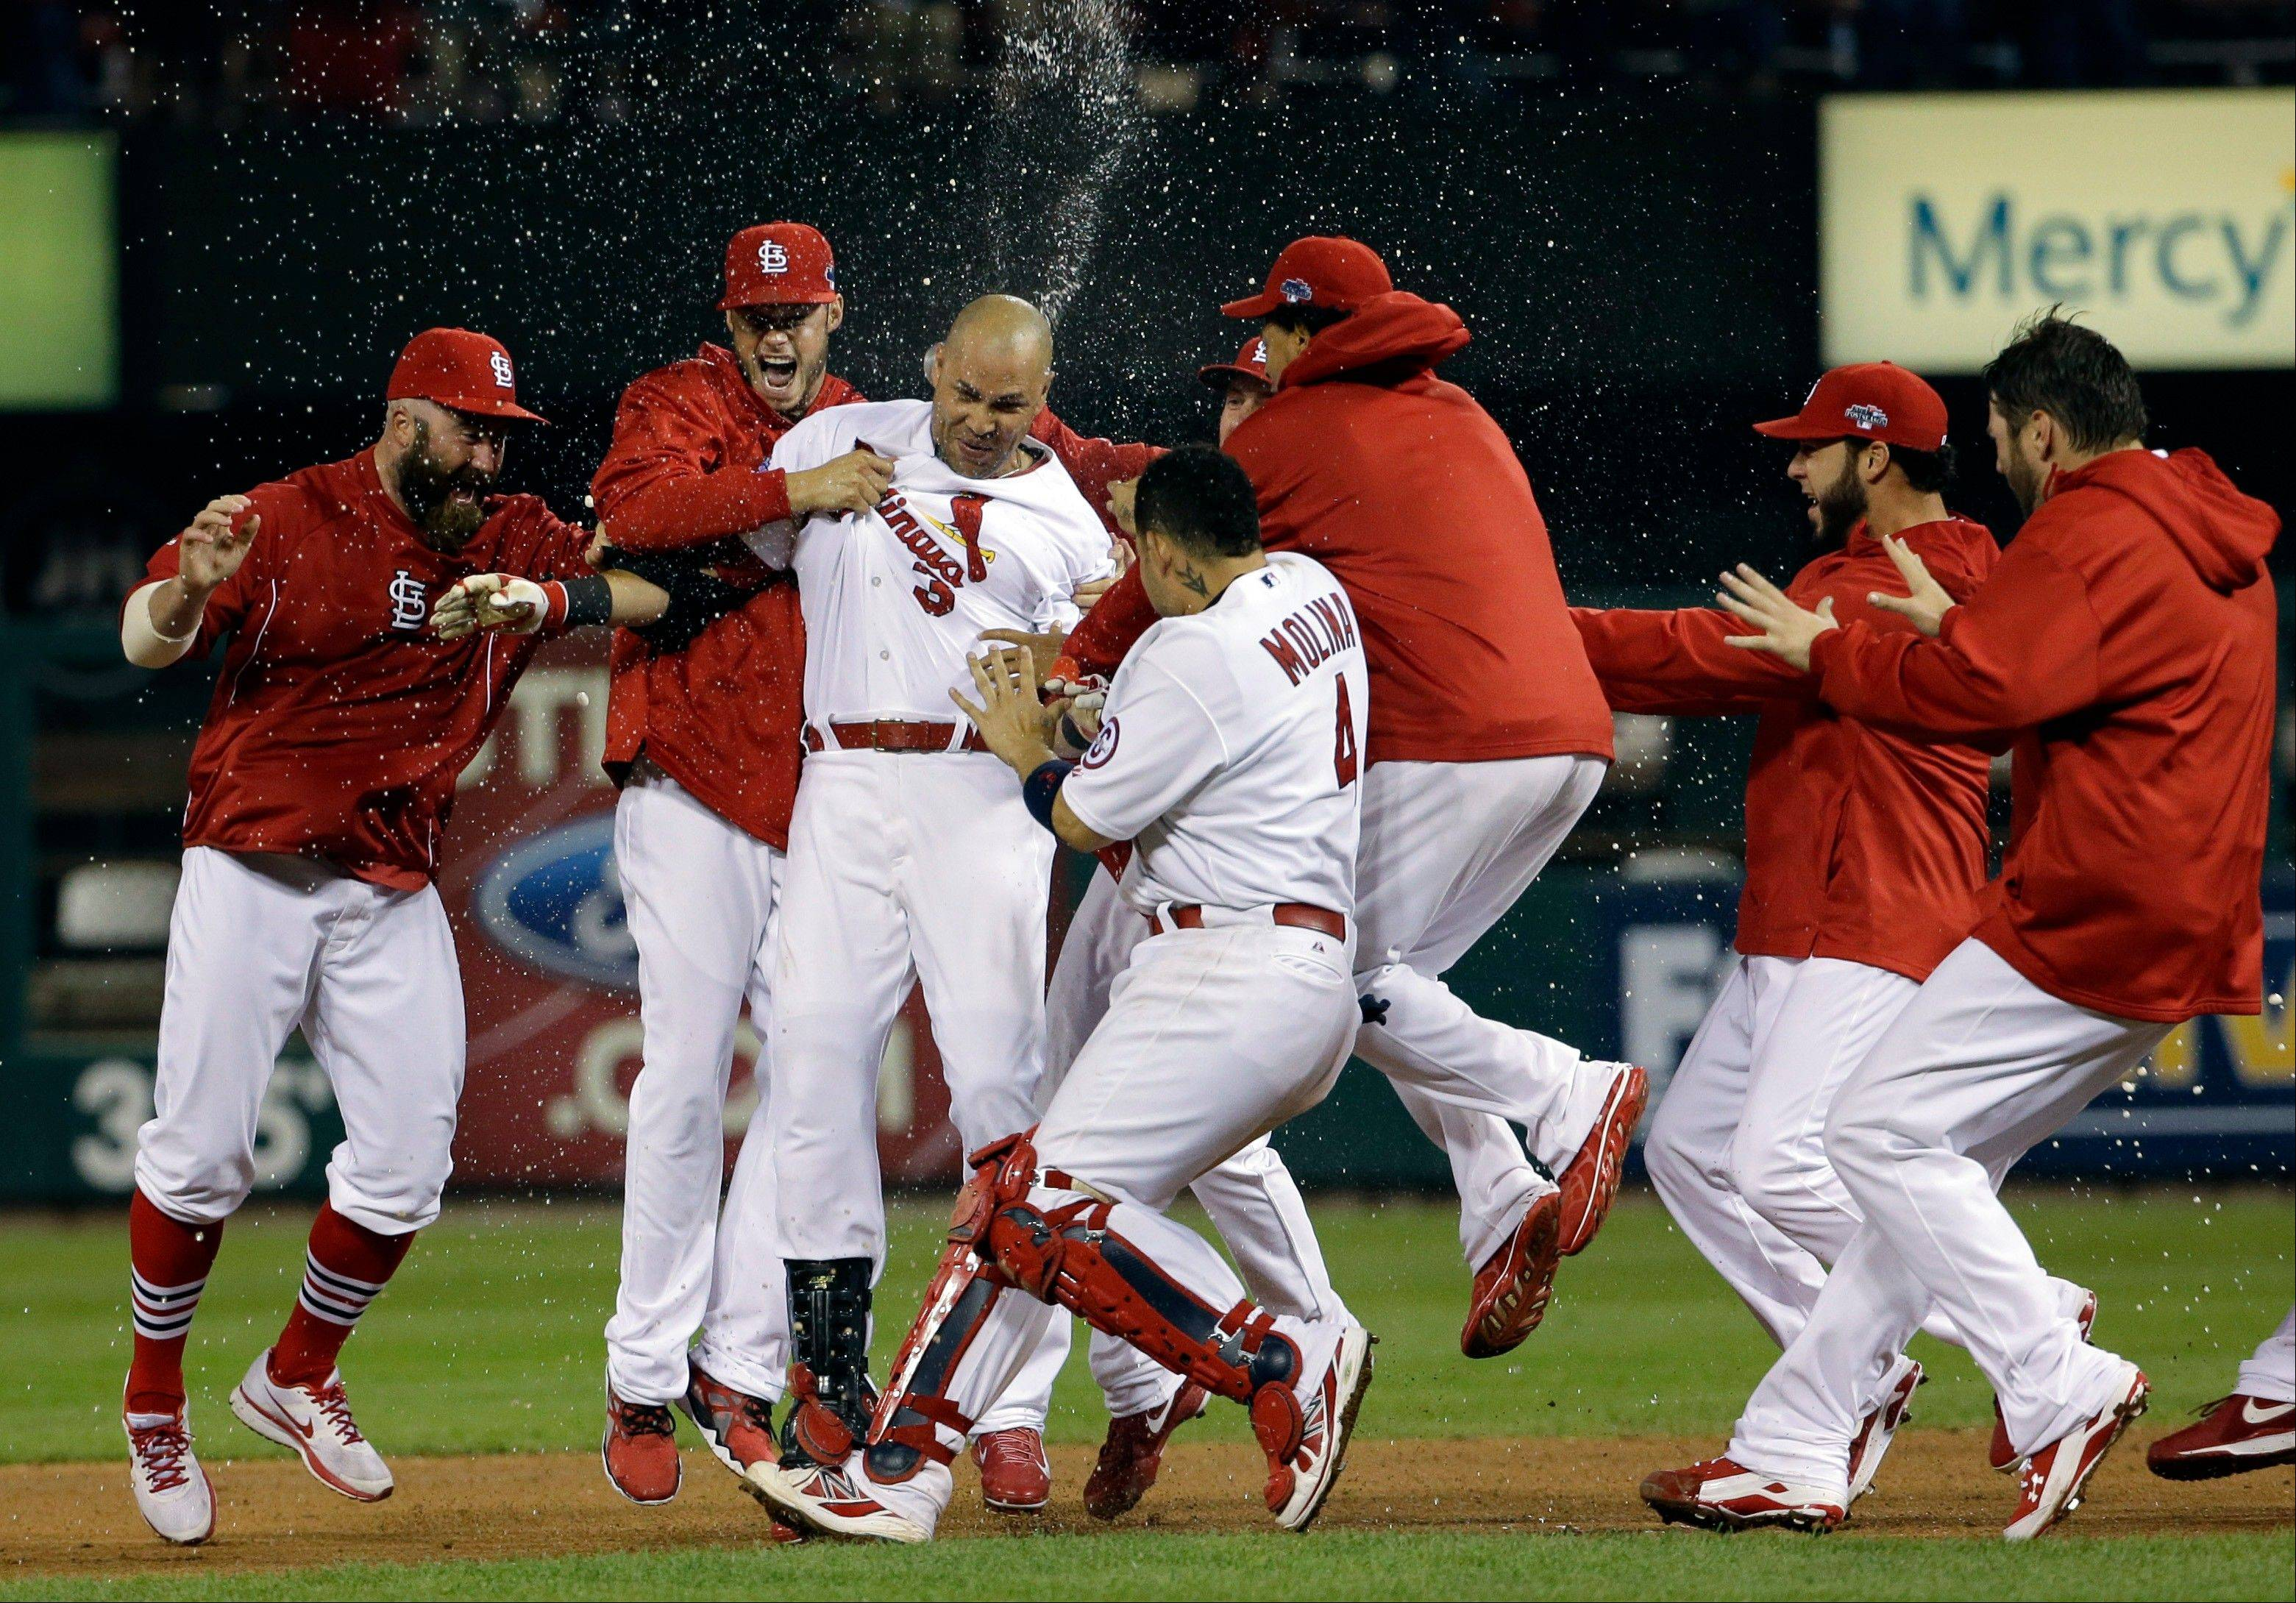 The Cardinals mob Carlos Beltran after his game-winning hit during the 13th inning of Game 1 against the Los Angeles Dodgers early Saturday morning in the National League Championship Series.